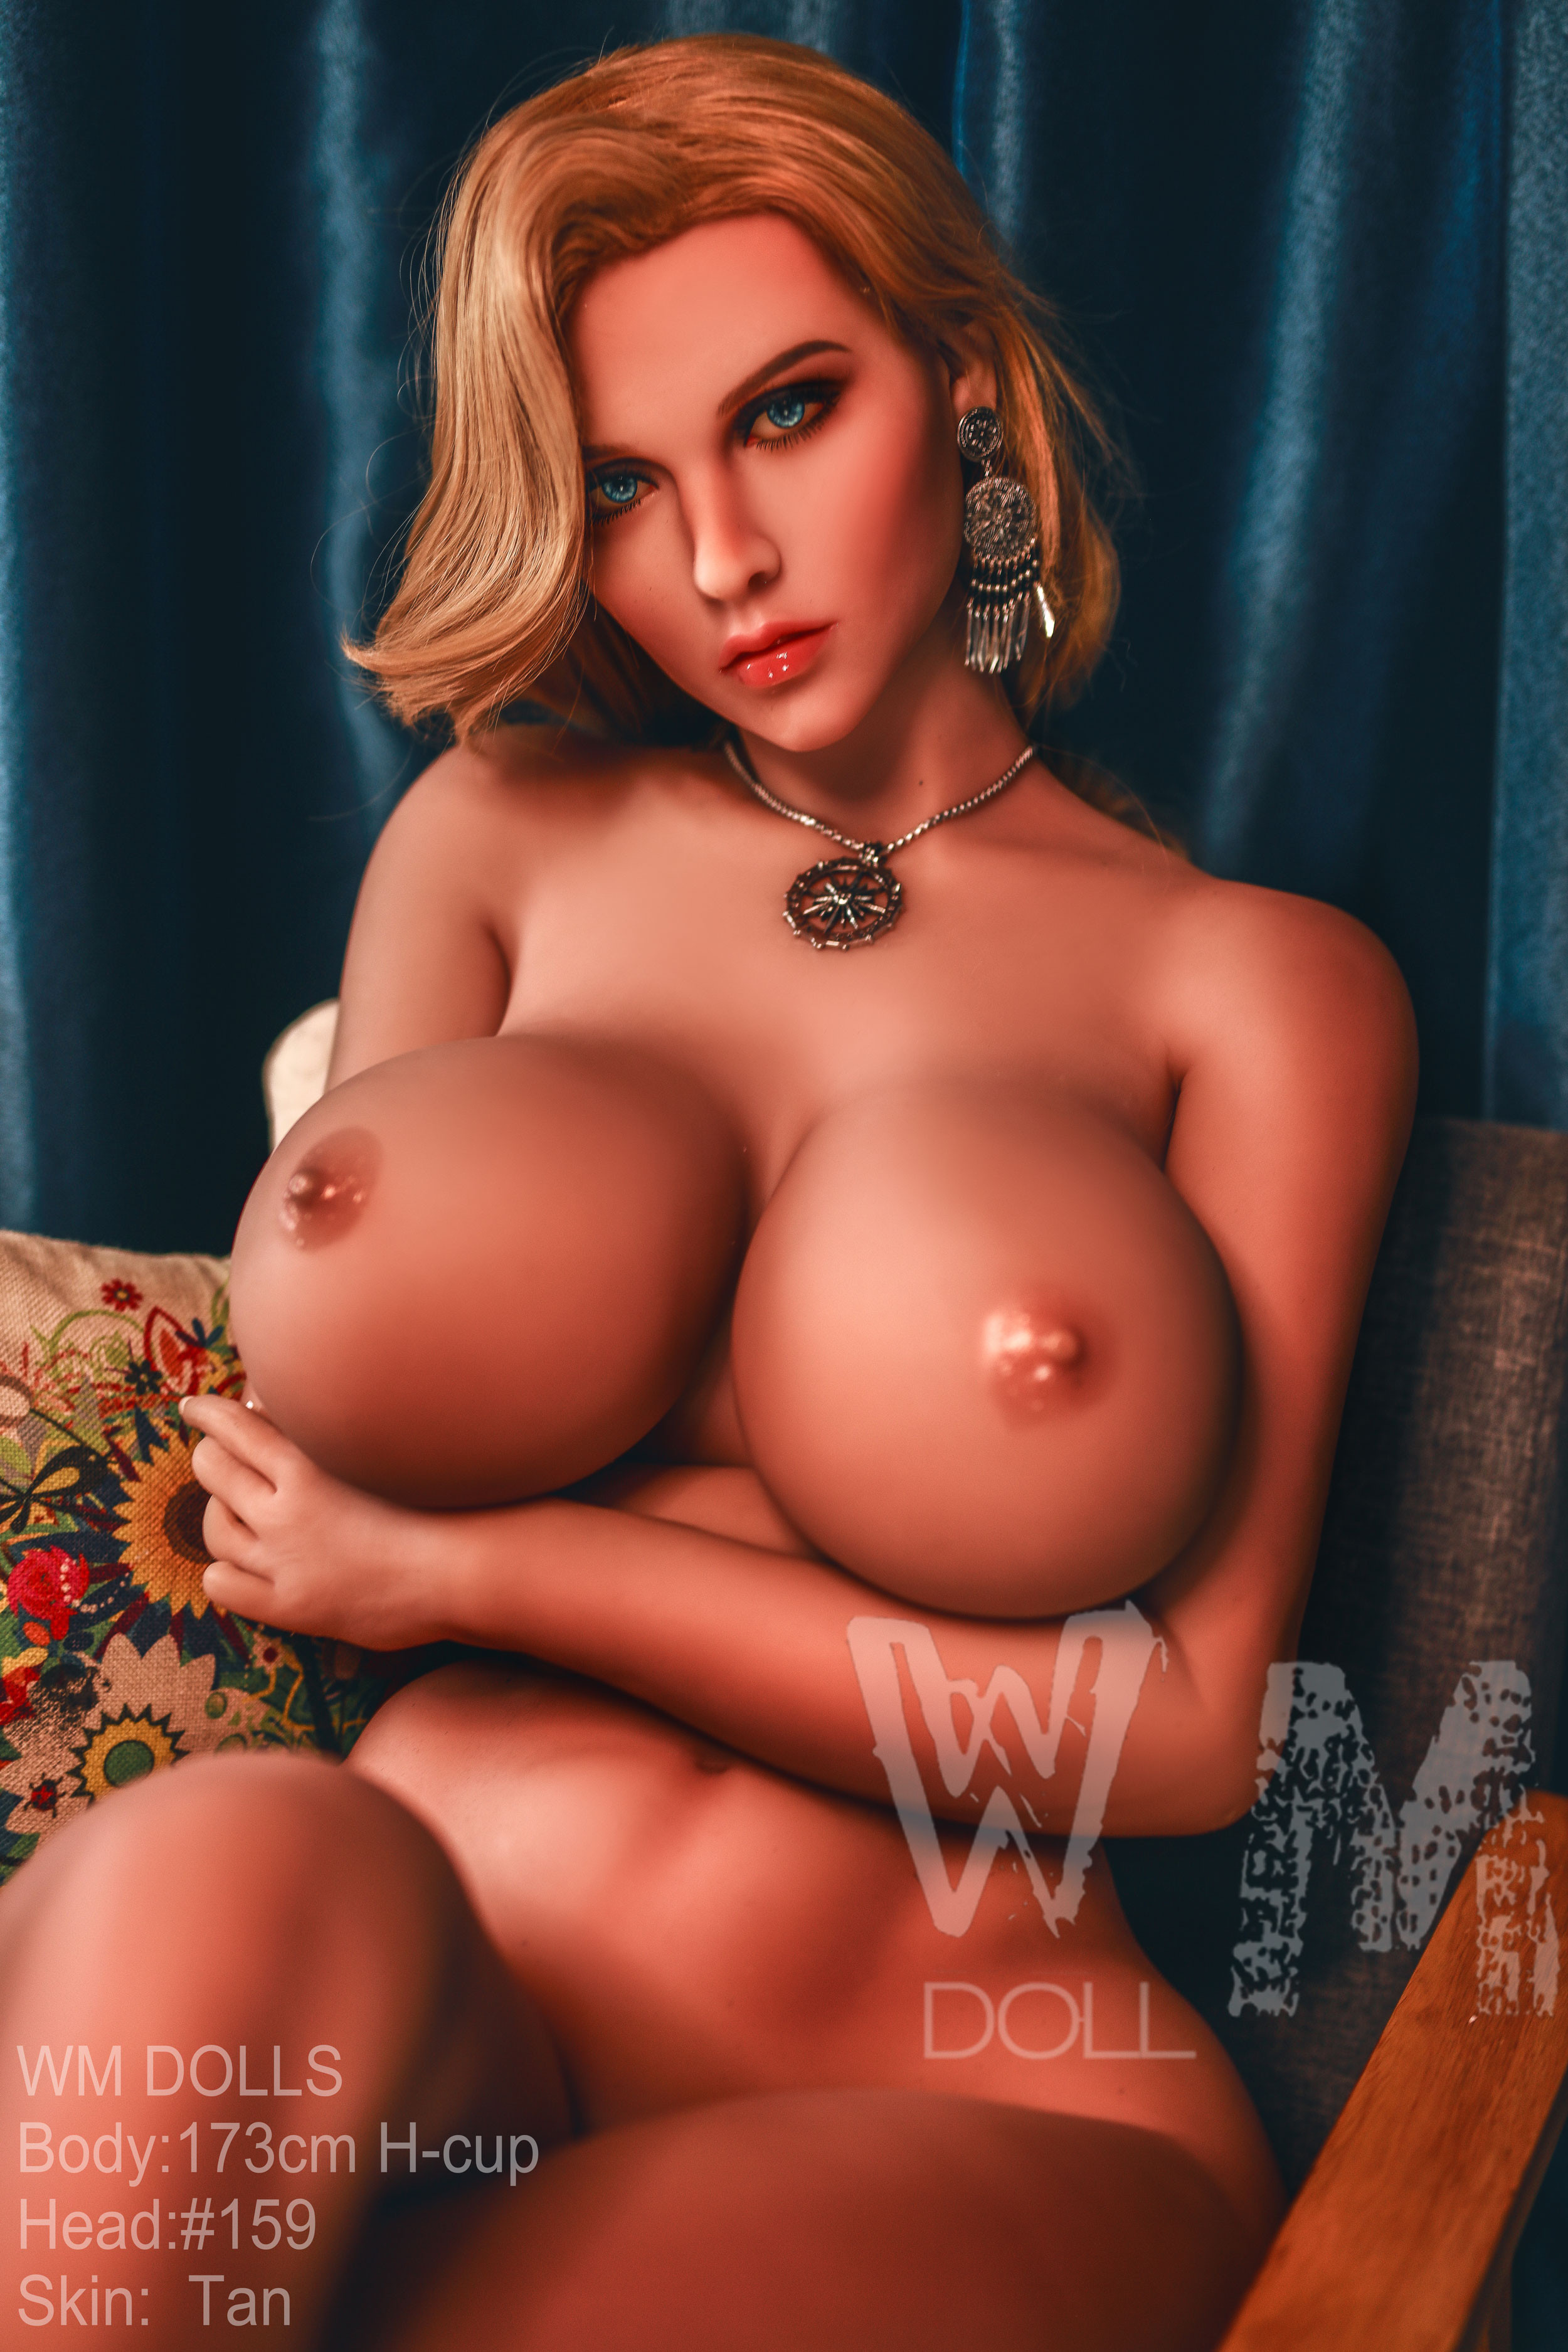 Echte junge Dame Real Doll Rabea